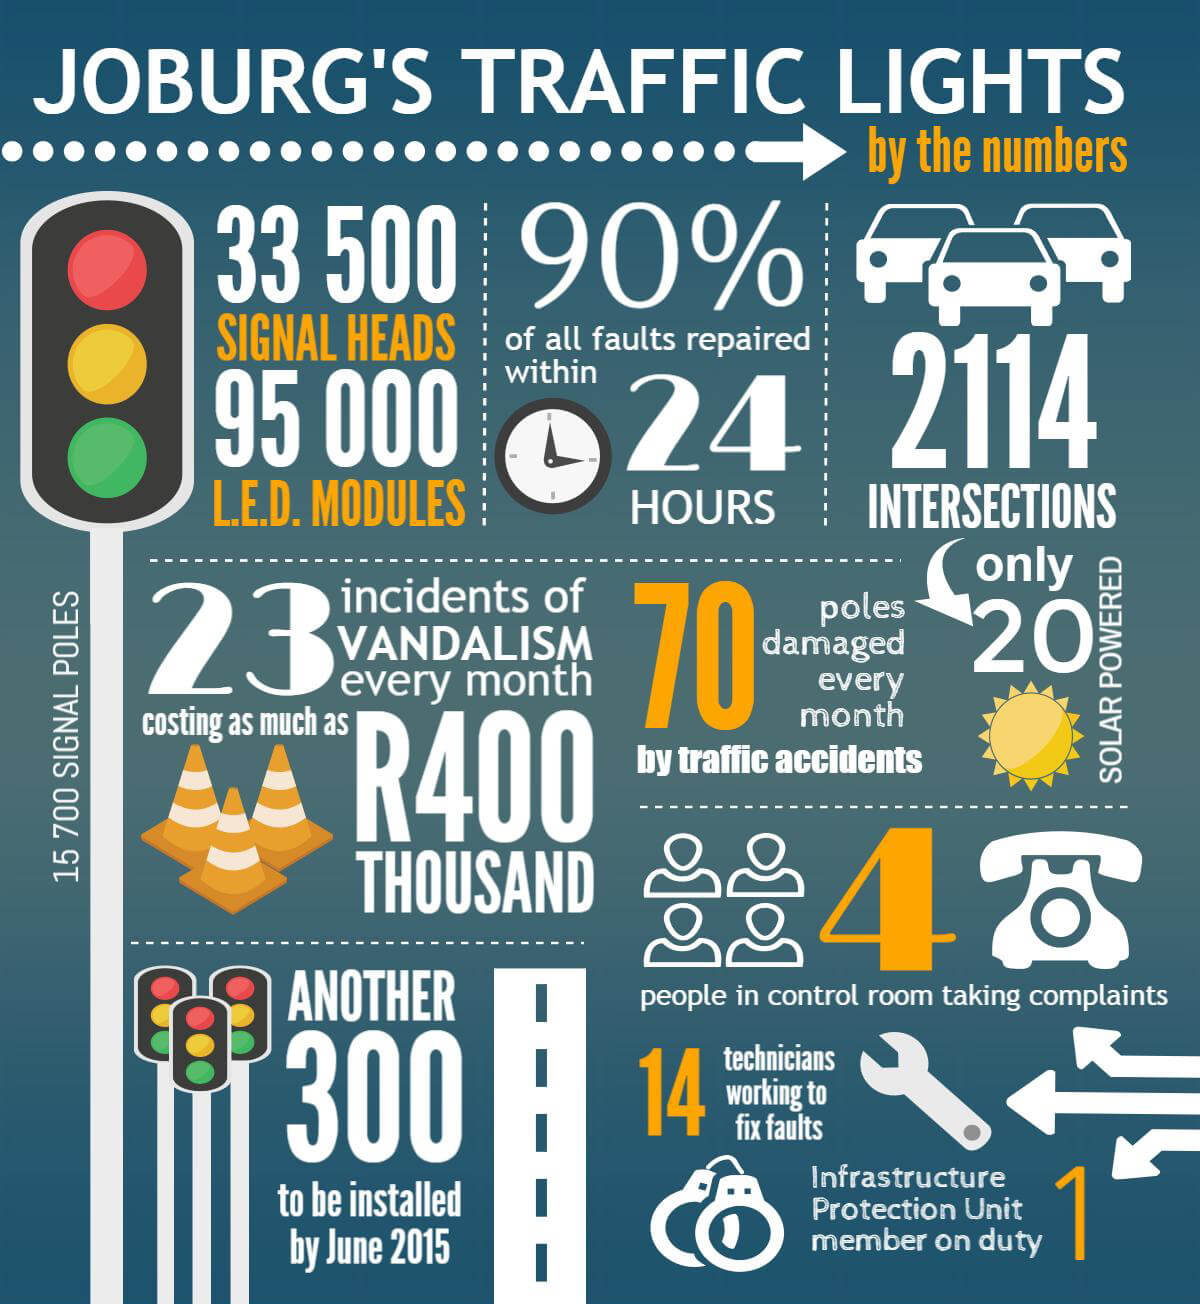 Traffic lights by numbers